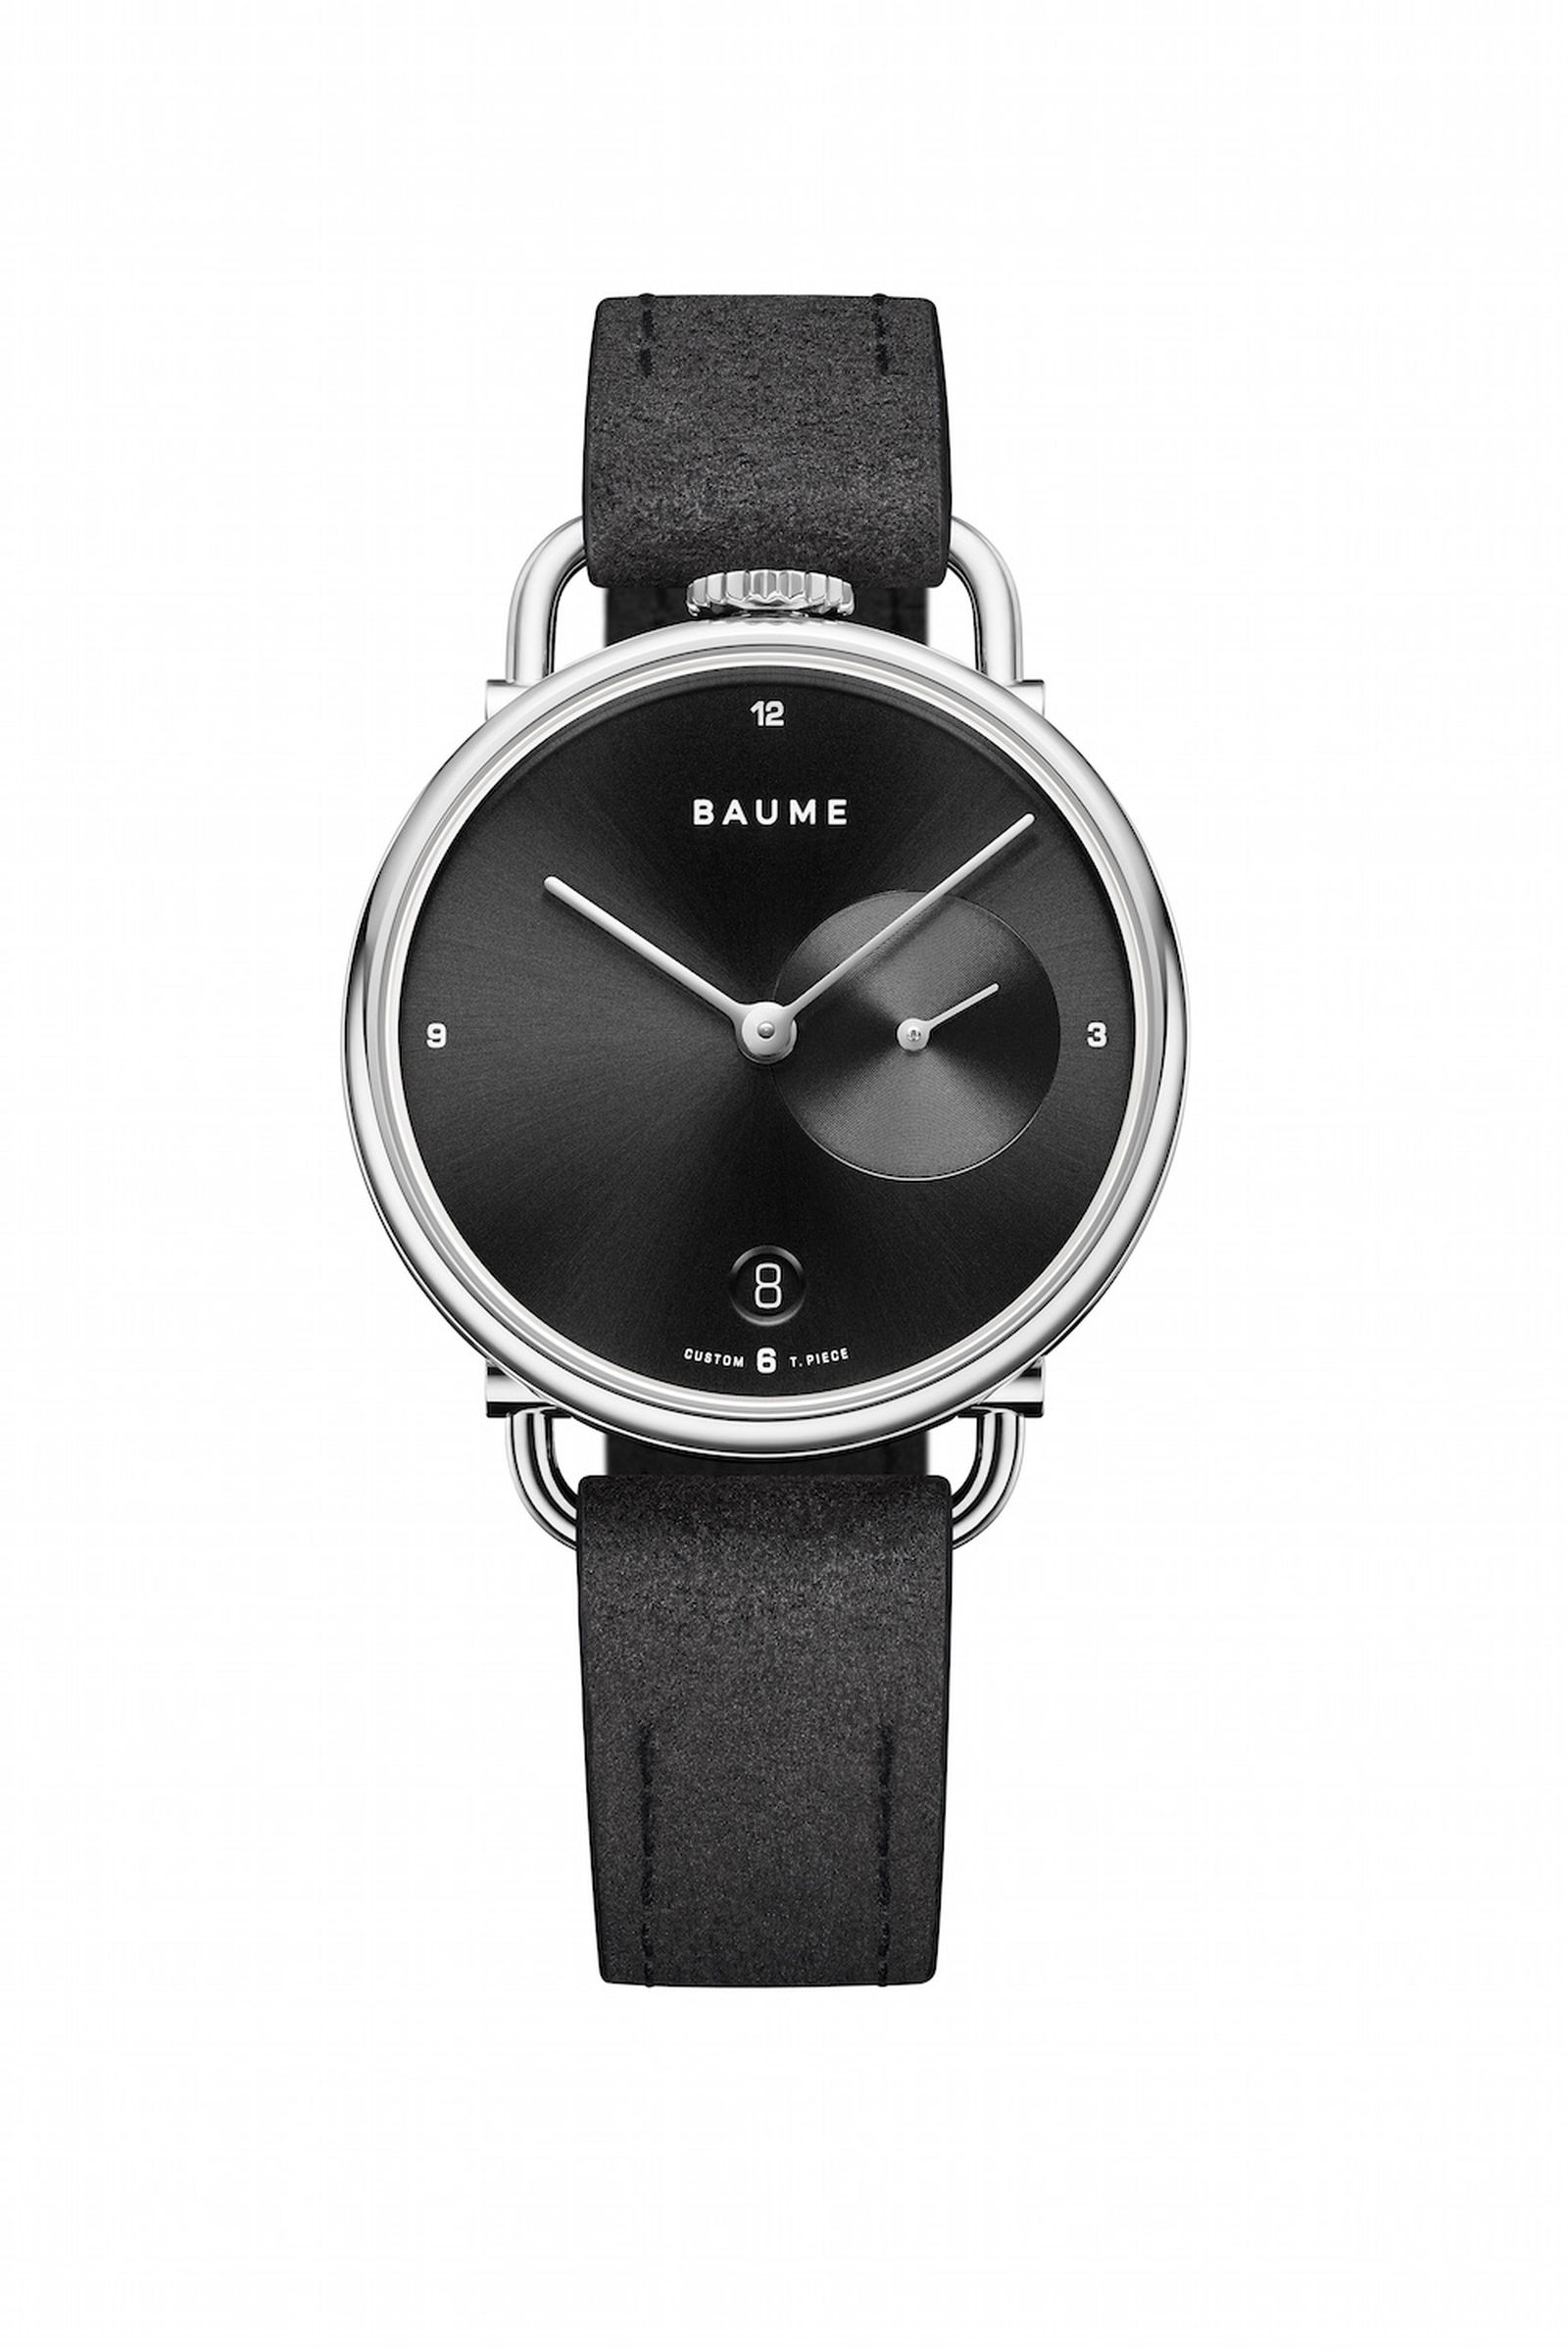 baume-sustainable-watch-collection-02